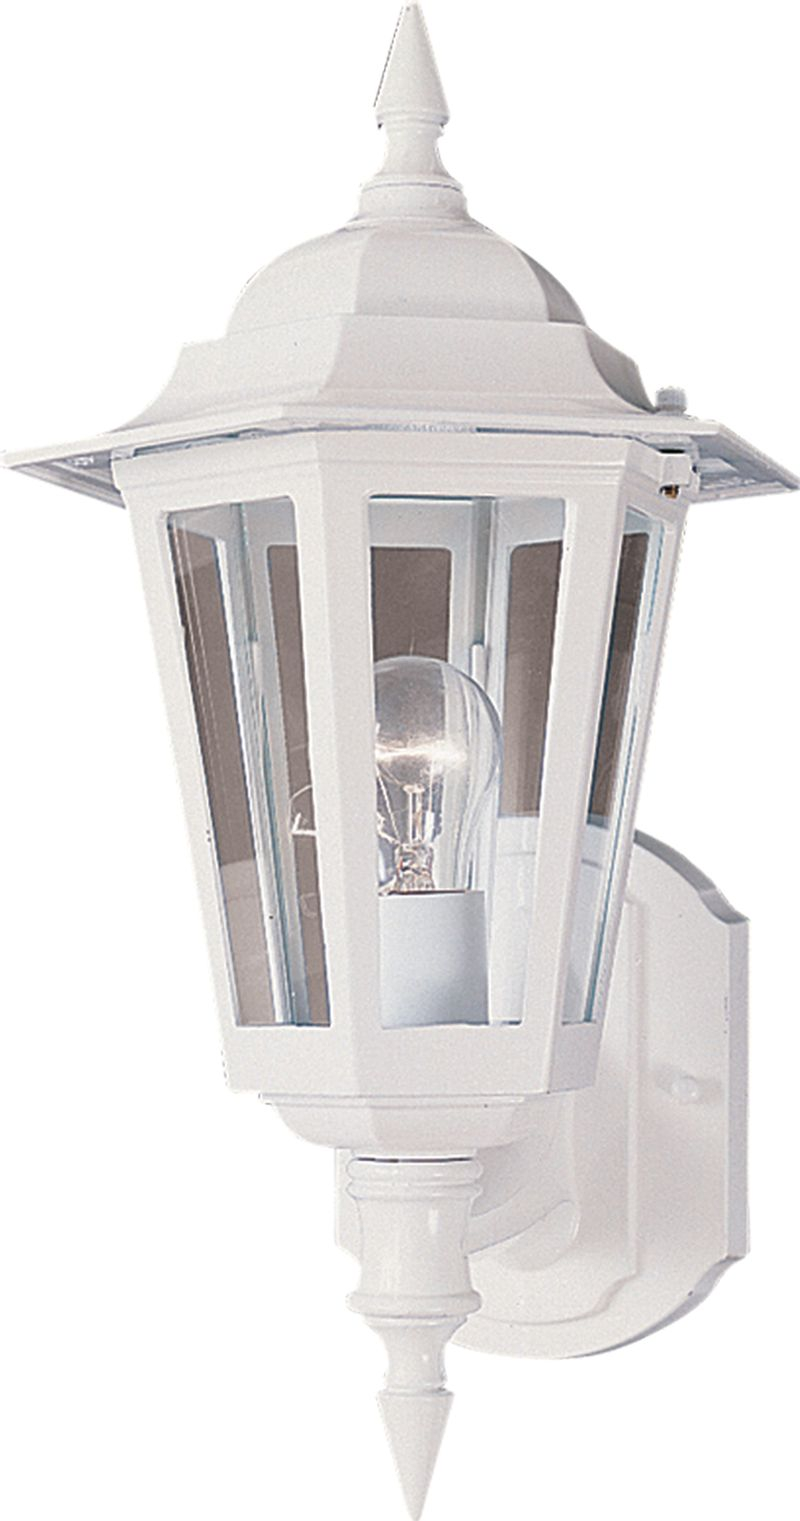 "Builder Cast 8"" 1-Light Outdoor Wall Mount - White"